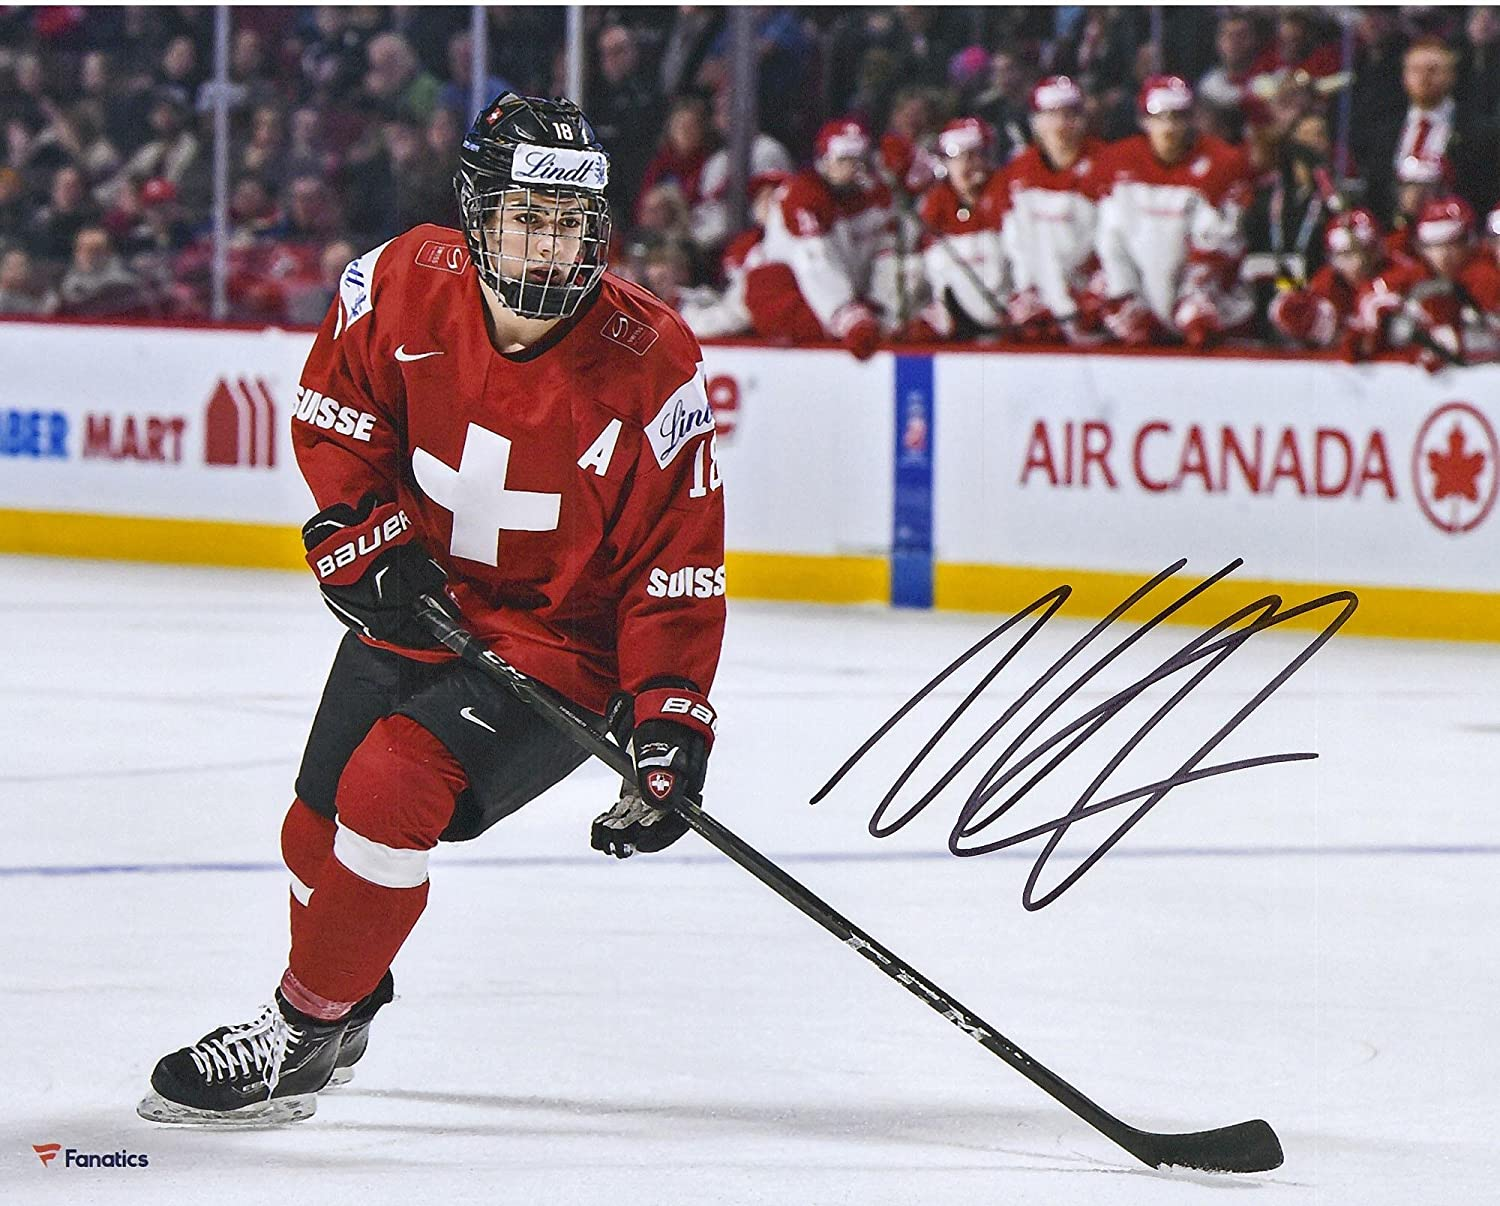 Nico Hischier New Jersey Devils Autographed Funko Pop Fanatics Exclusive Fanatics Authentic Certified Figurine Limited Edition of 100